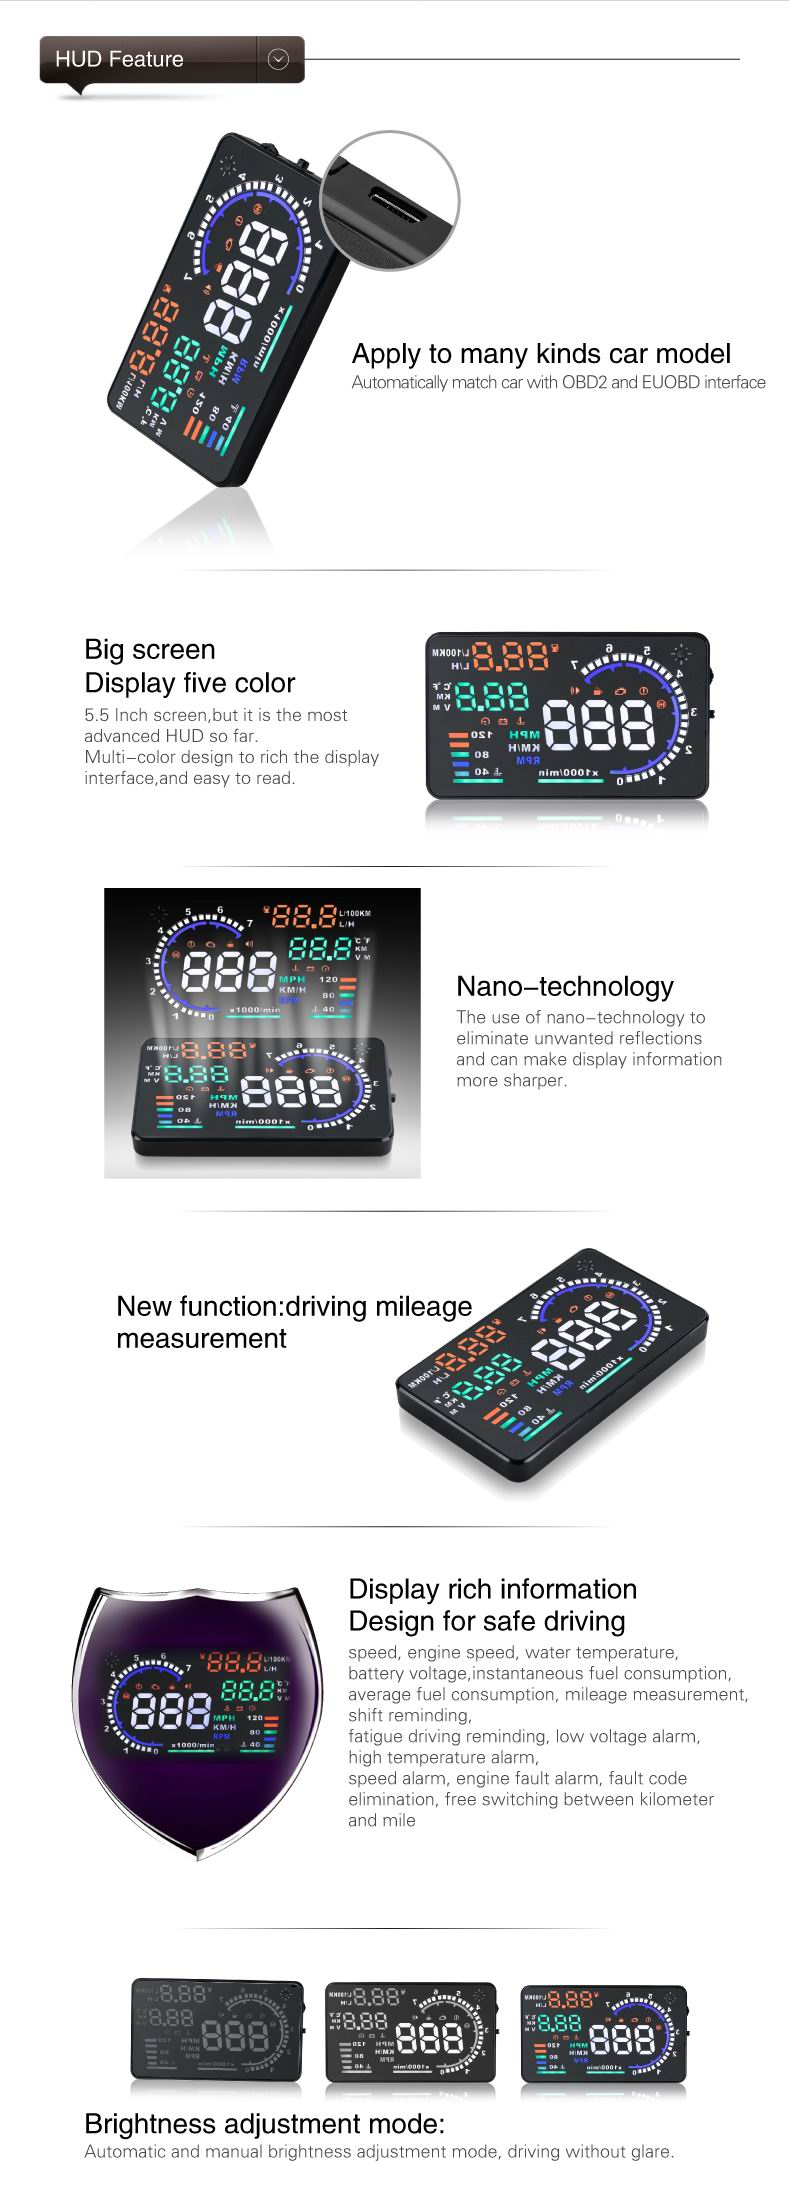 A8 55 Car Hud Head Up Display Led Projector Obd2 Remote Control Toy Transmitter Circuit Automotivecircuit For Asia It Can Only Be Used Cars With Manufactured After 2007 No Support Obd I And Jobd Japanese